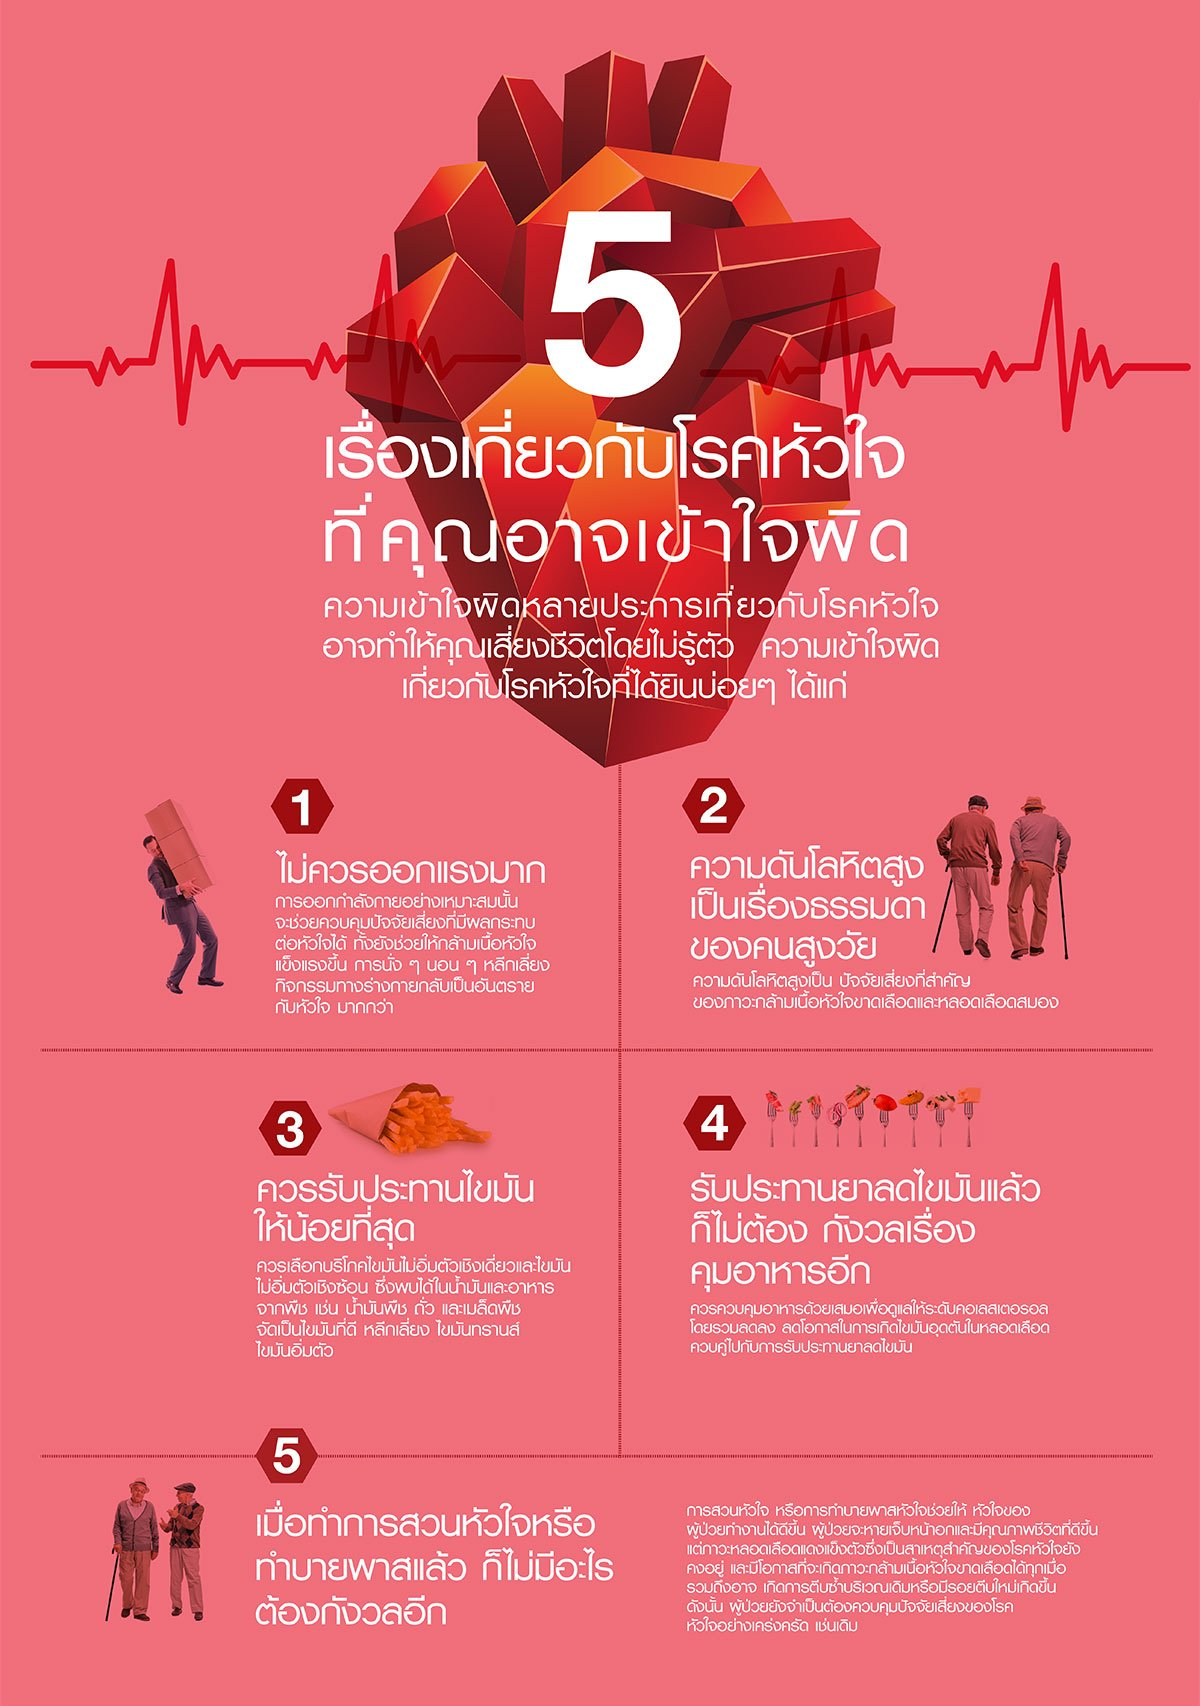 facts-about-heart-disease-infographic.jpg